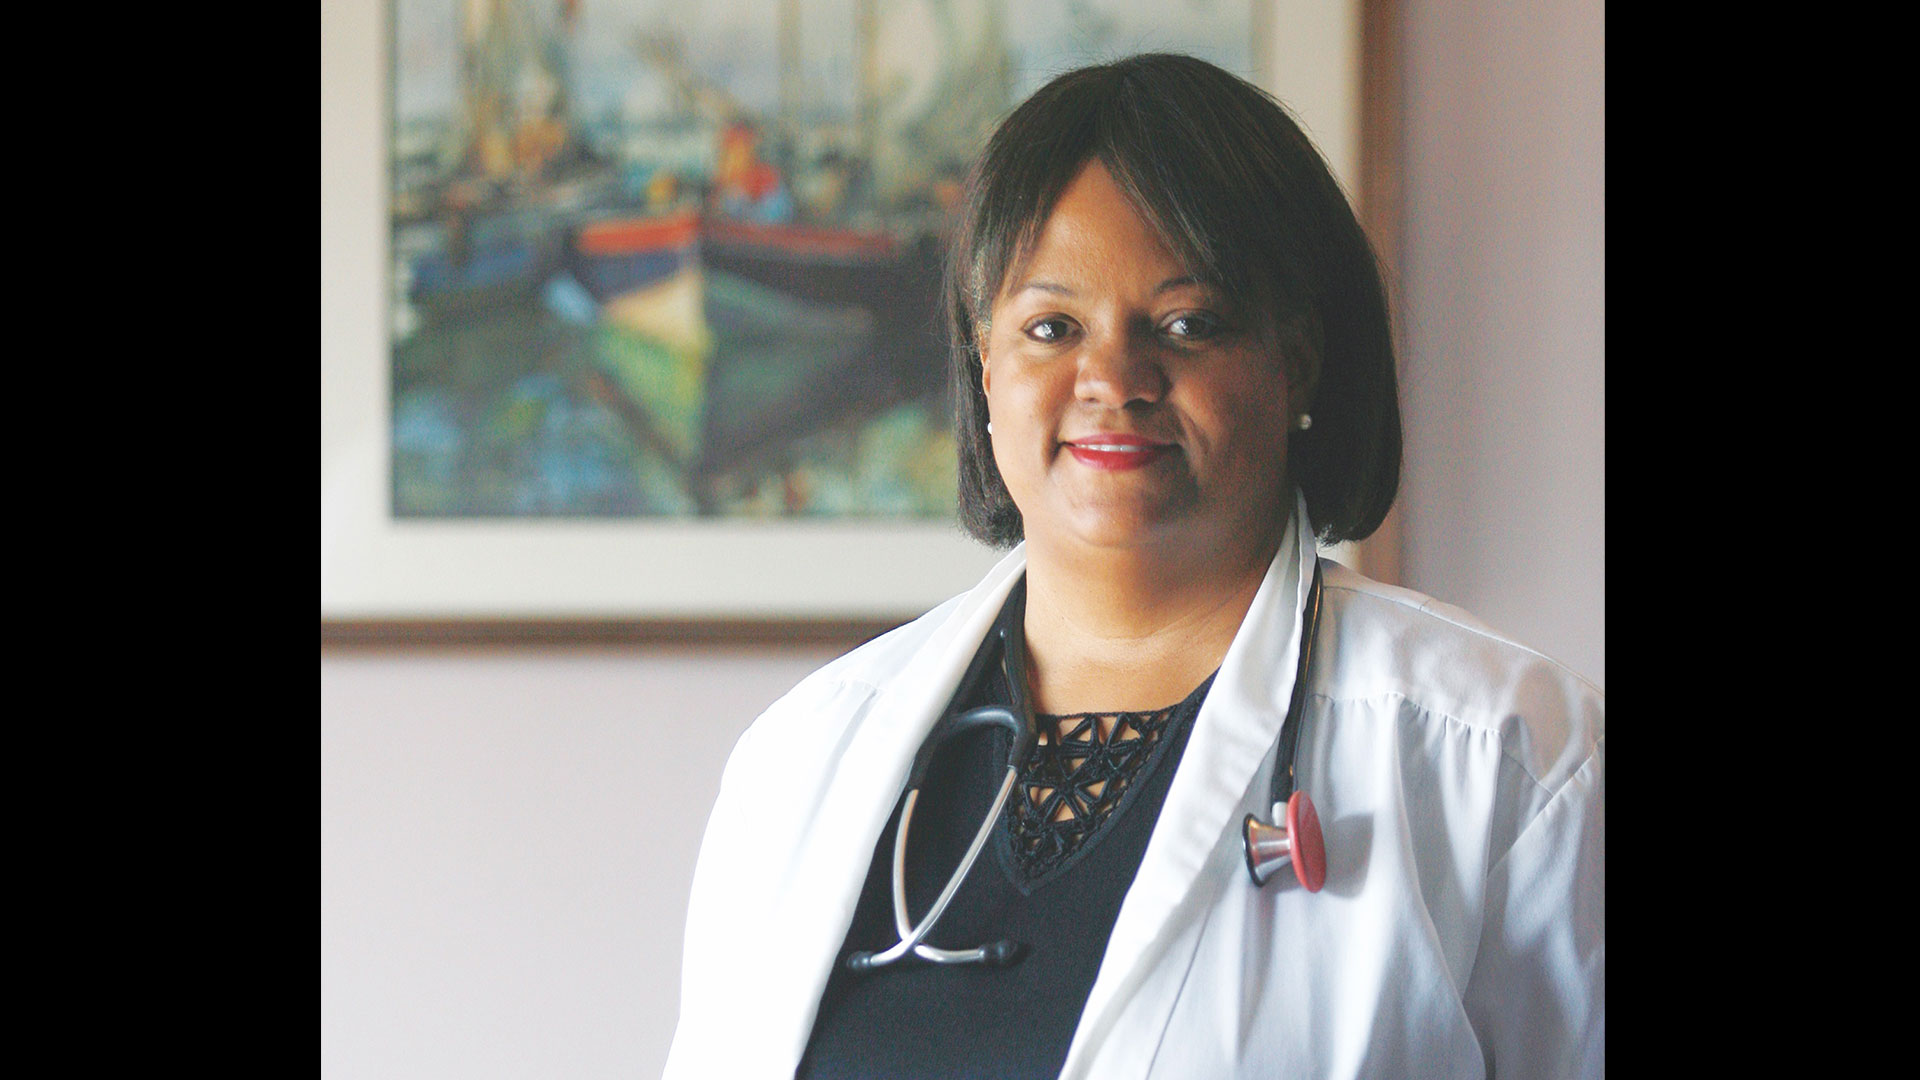 Black Women in Medicine BHM